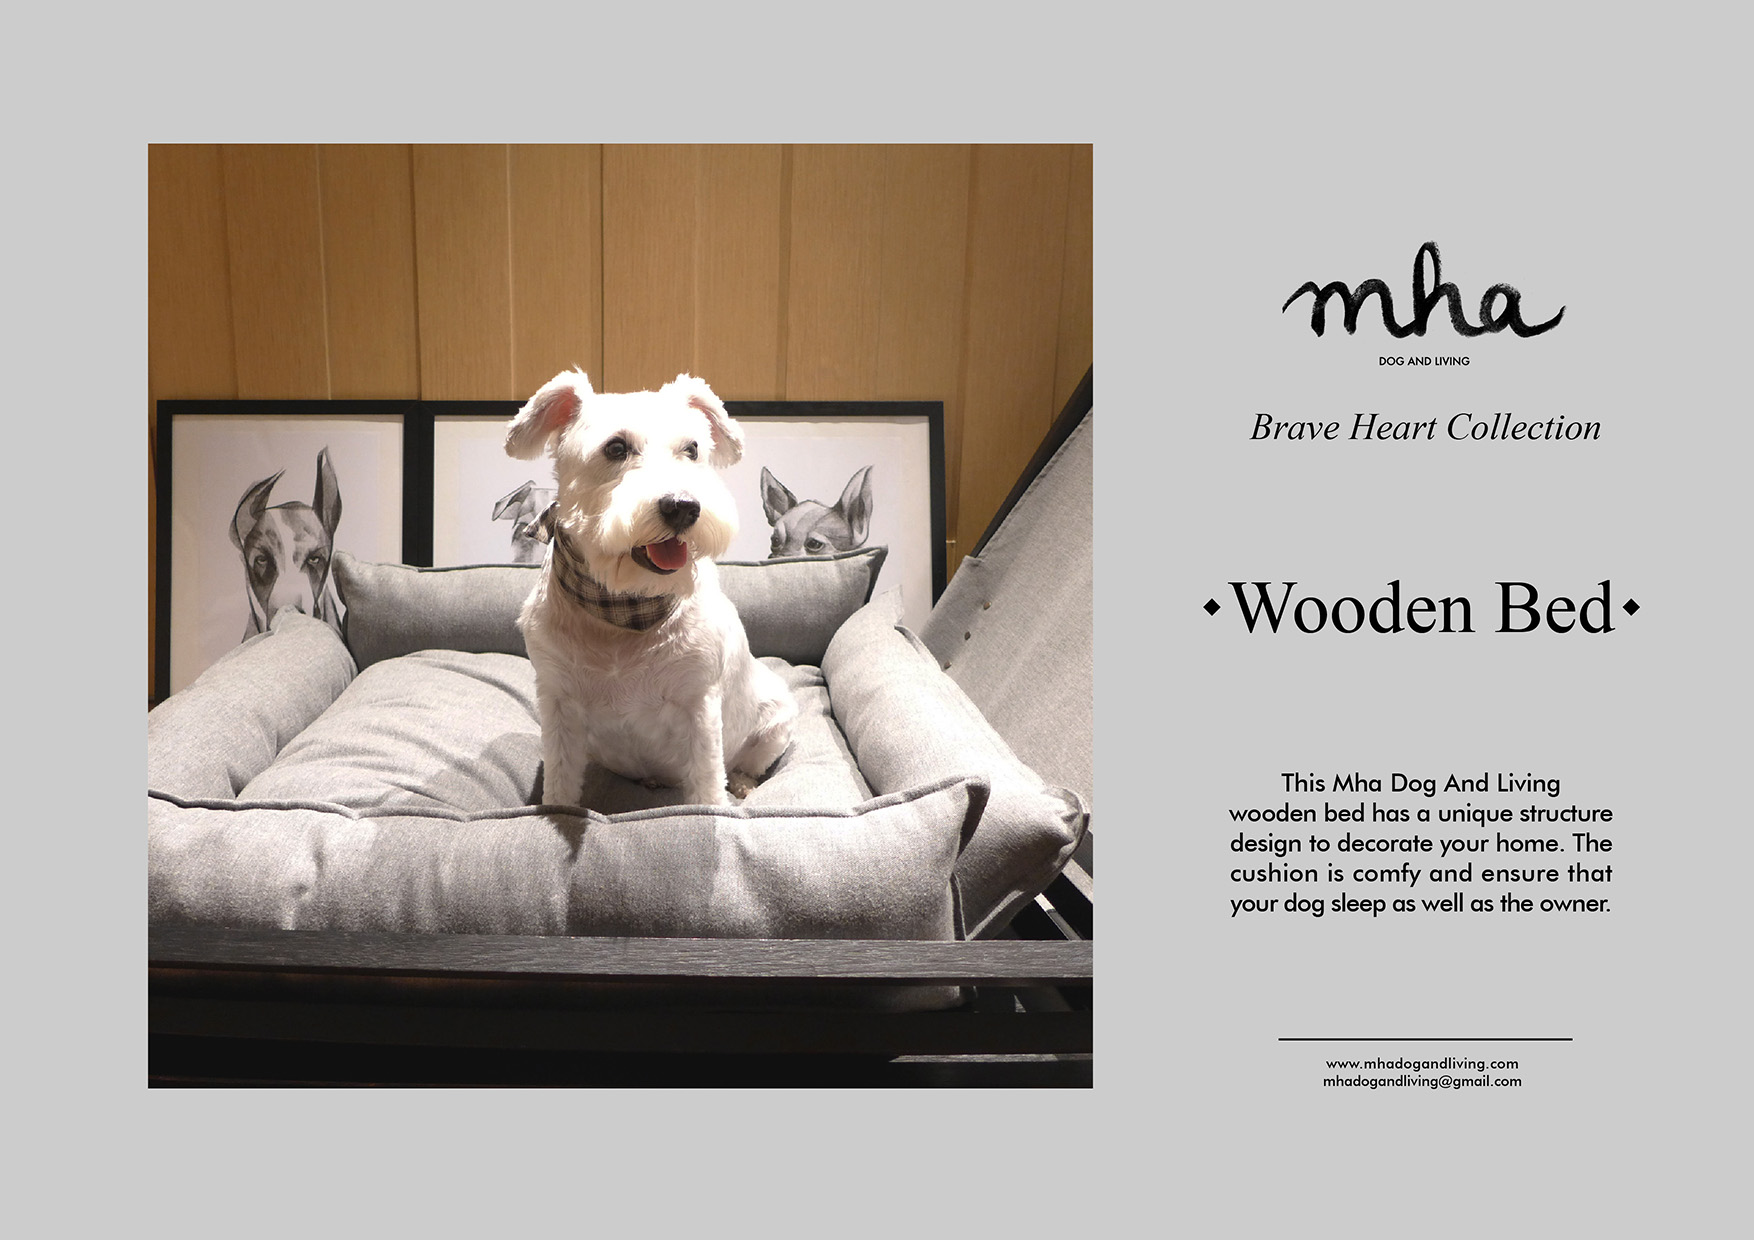 04 - wooden bed 01